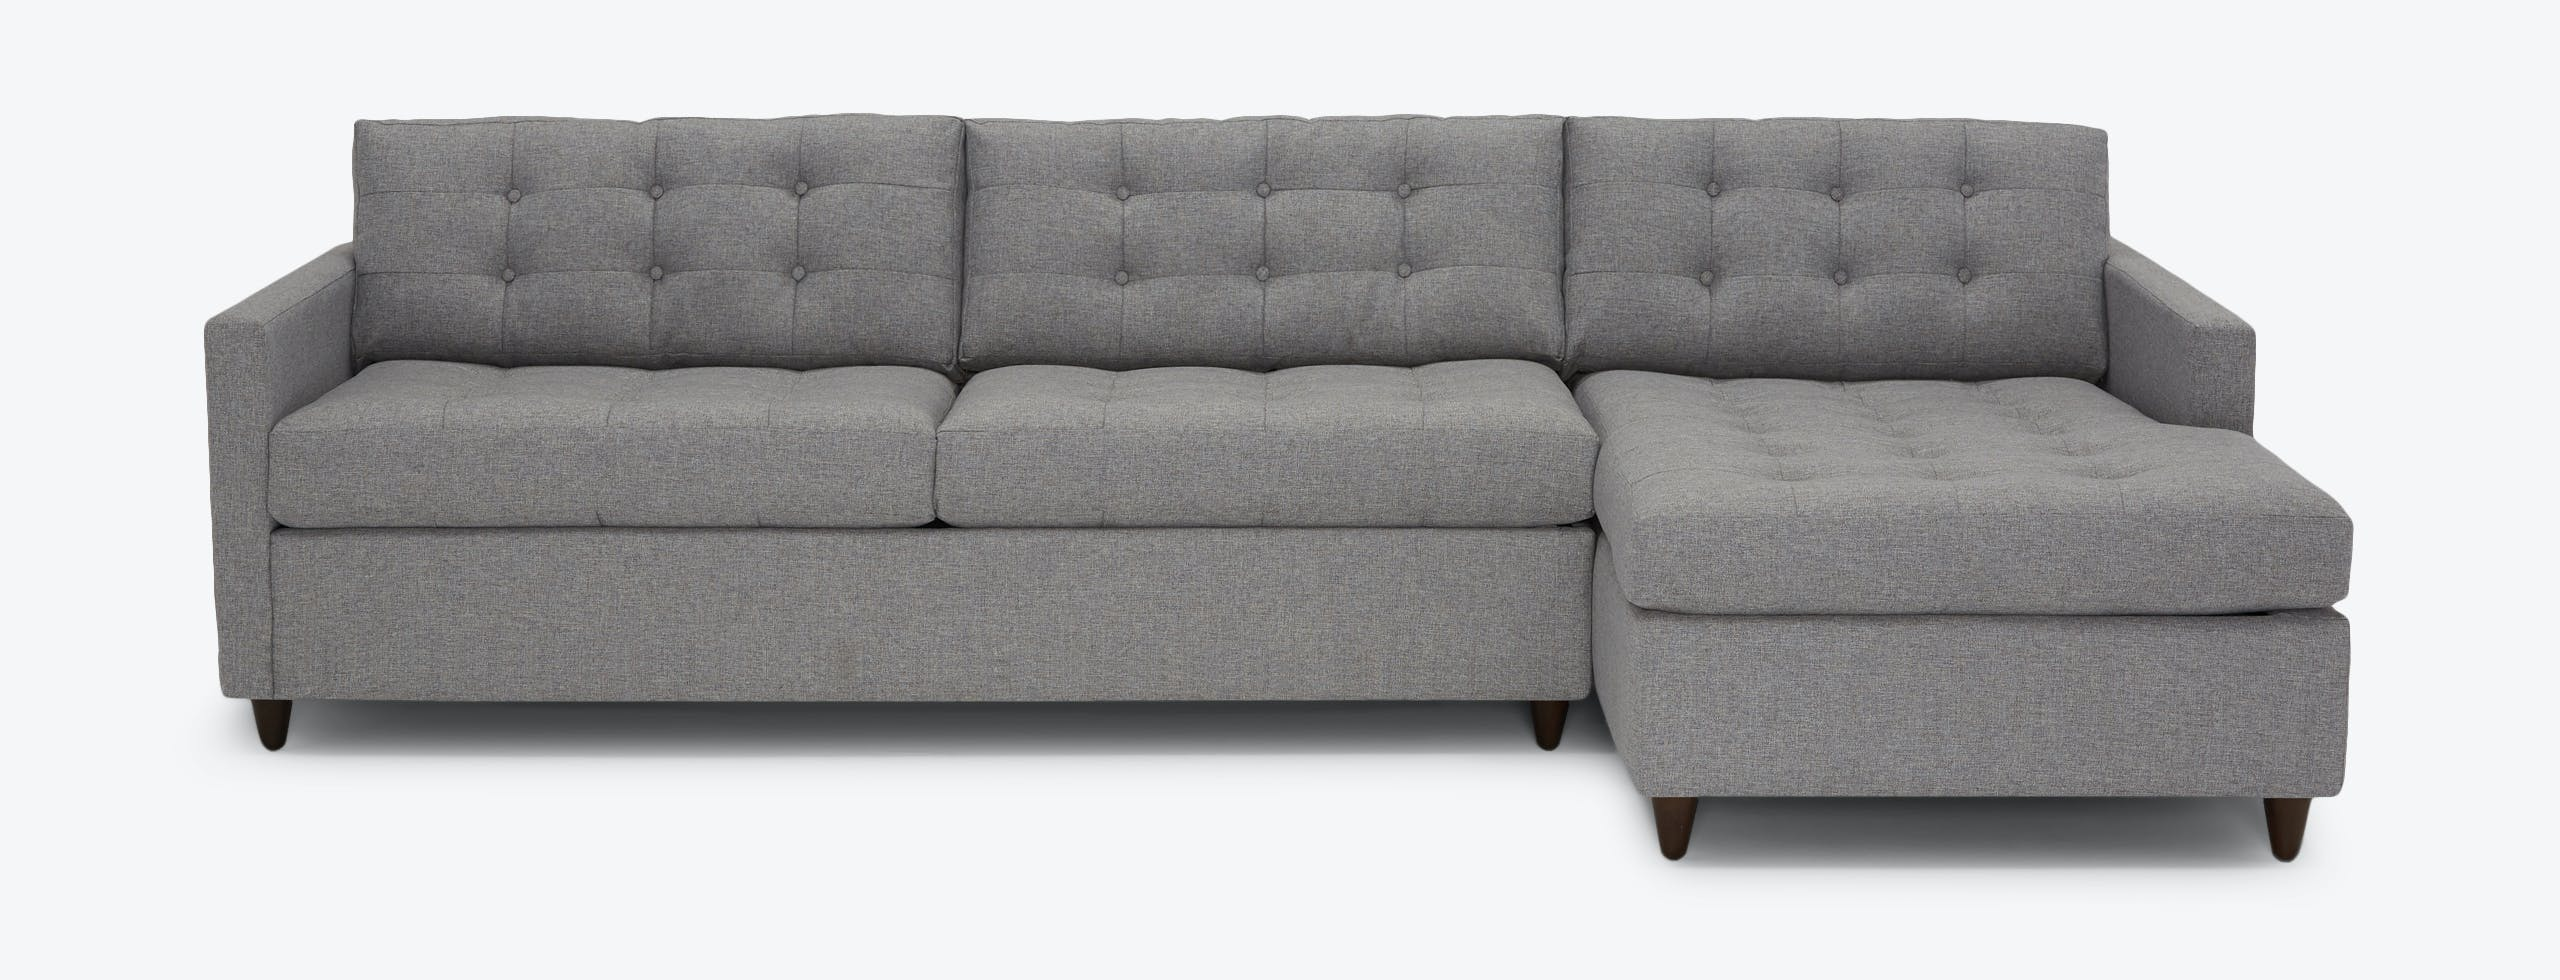 Eliot Sleeper Sectional With Storage